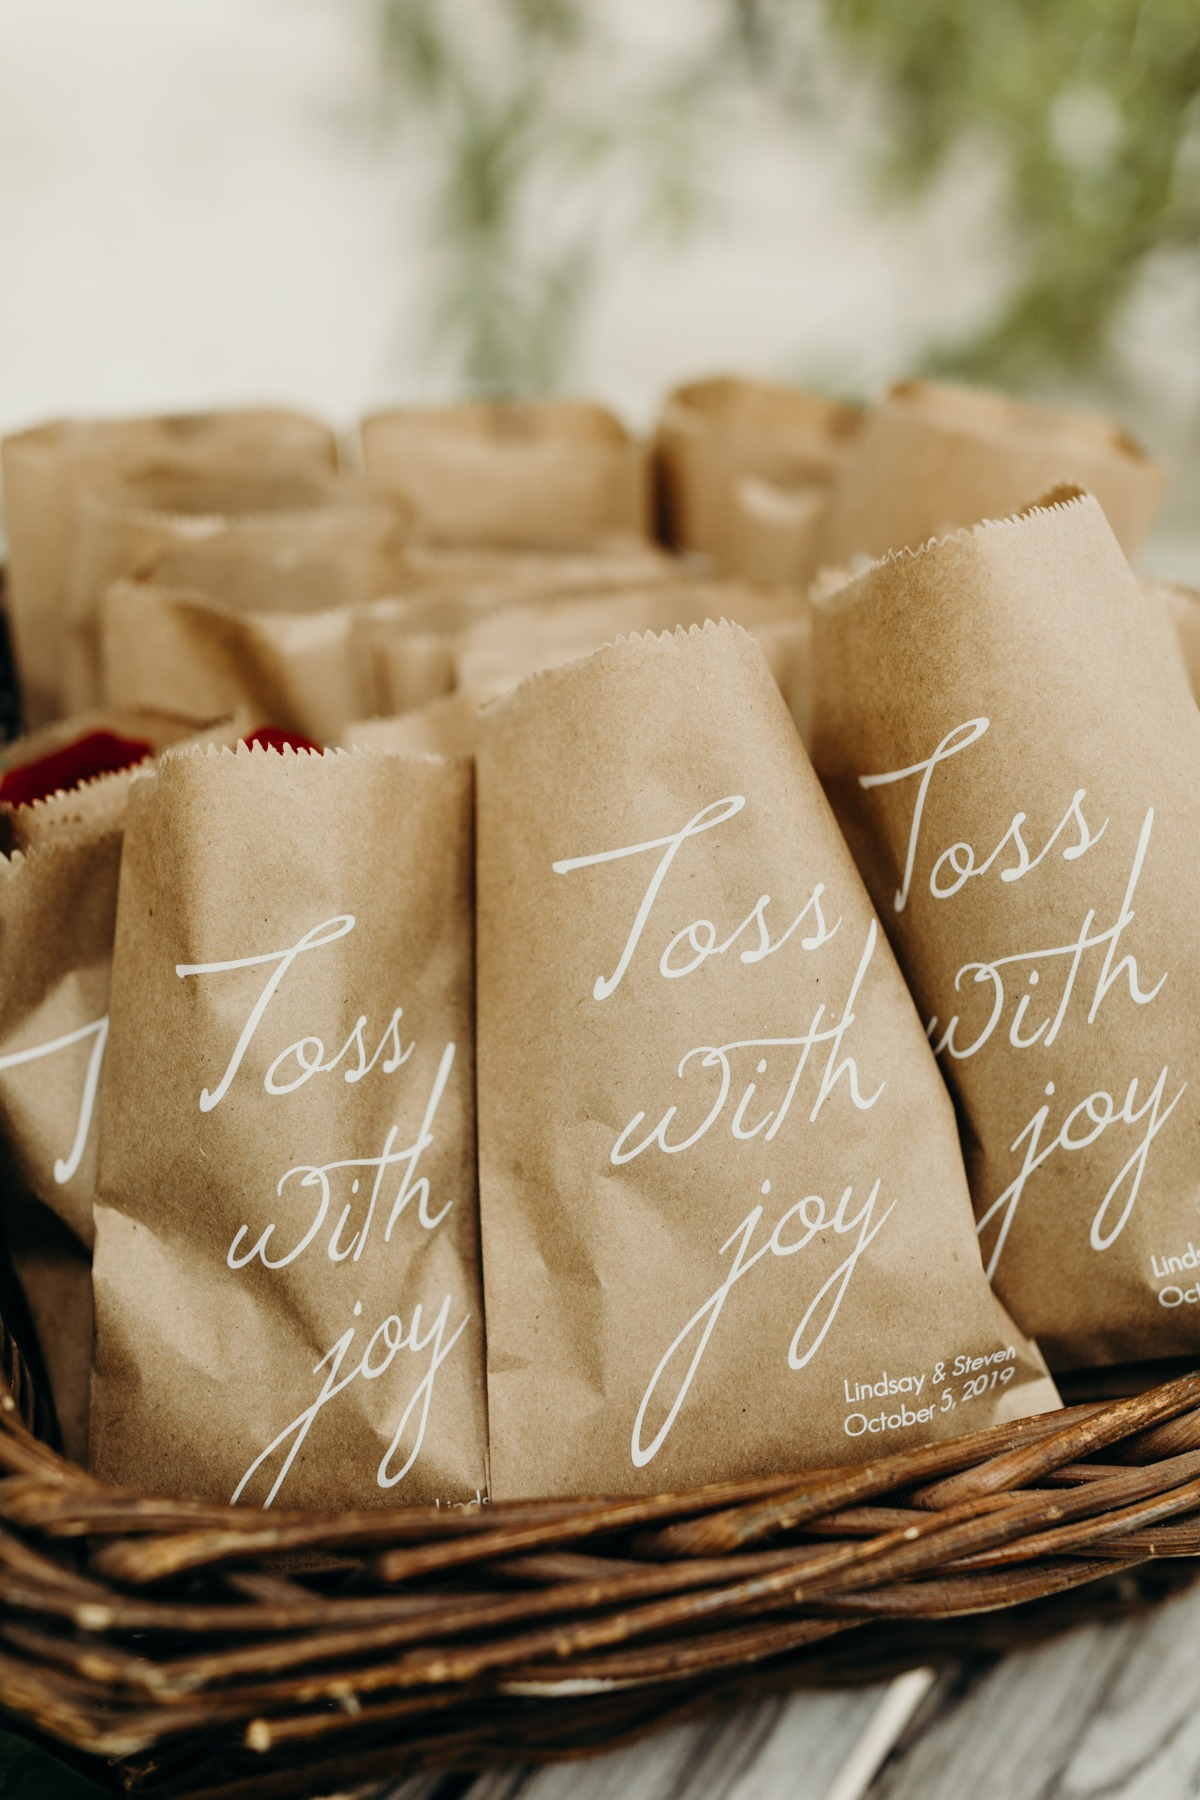 kraft wedding paper bags filled with roses to toss down the aisle